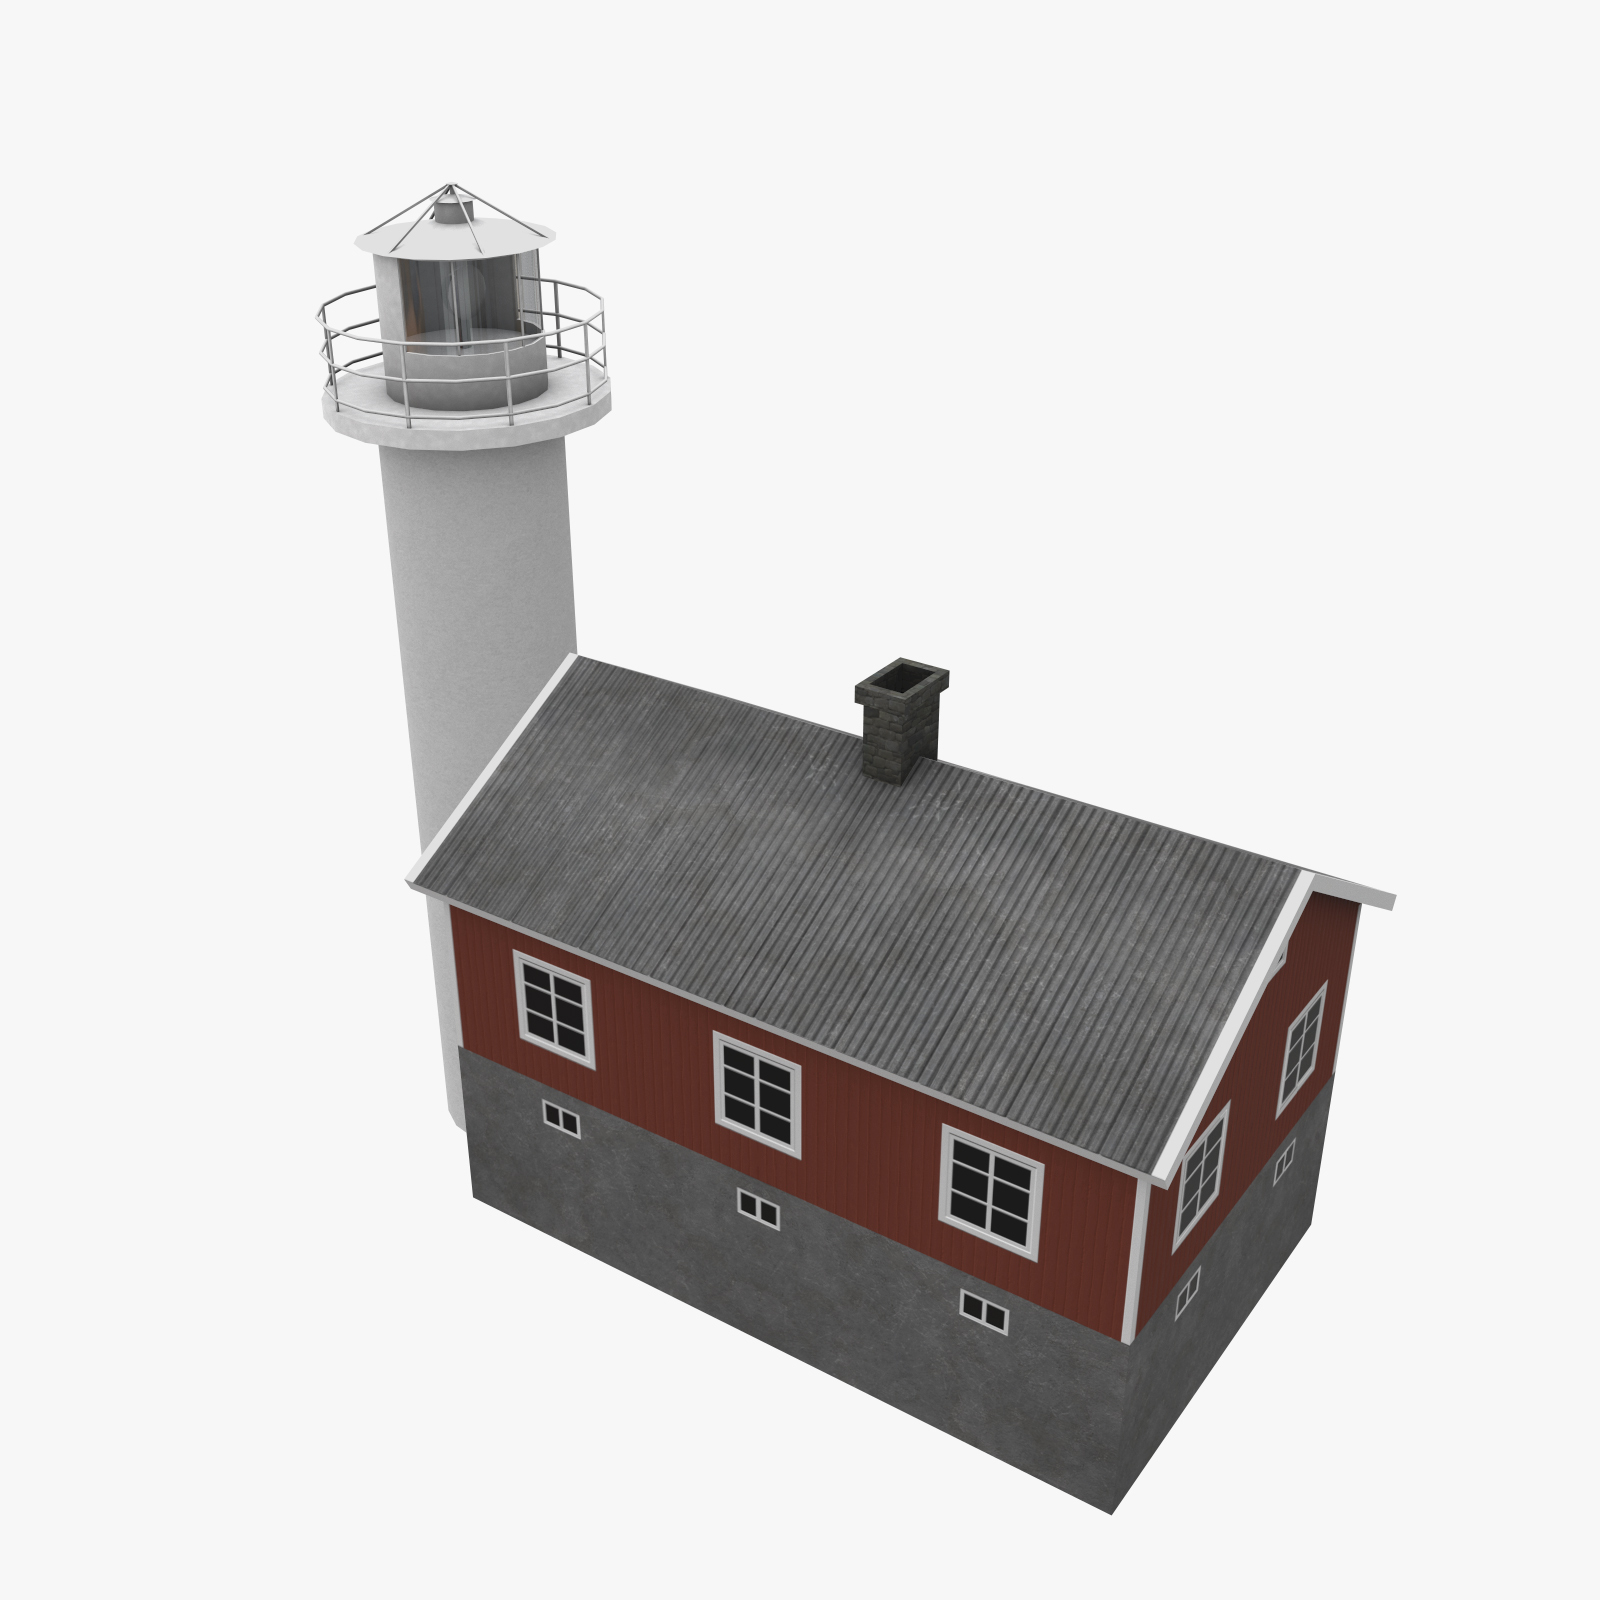 Light House Haken  - Extended License